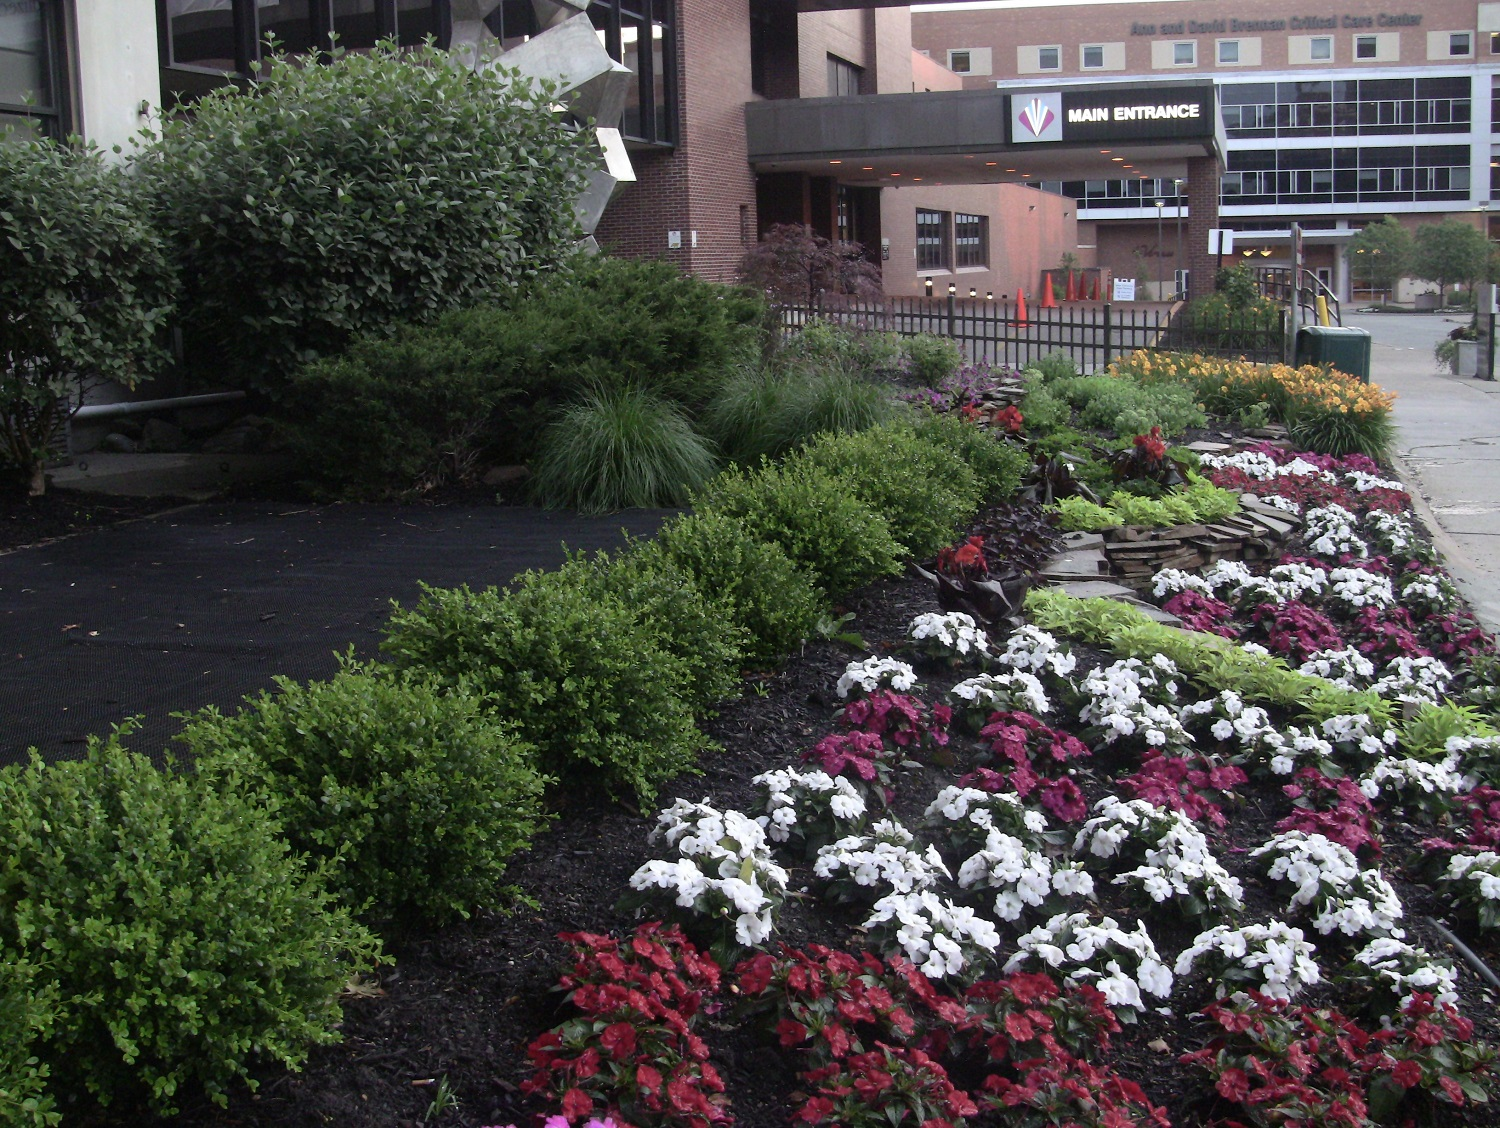 Hospital Landscaping: 10 Common Problems and How to Solve Them